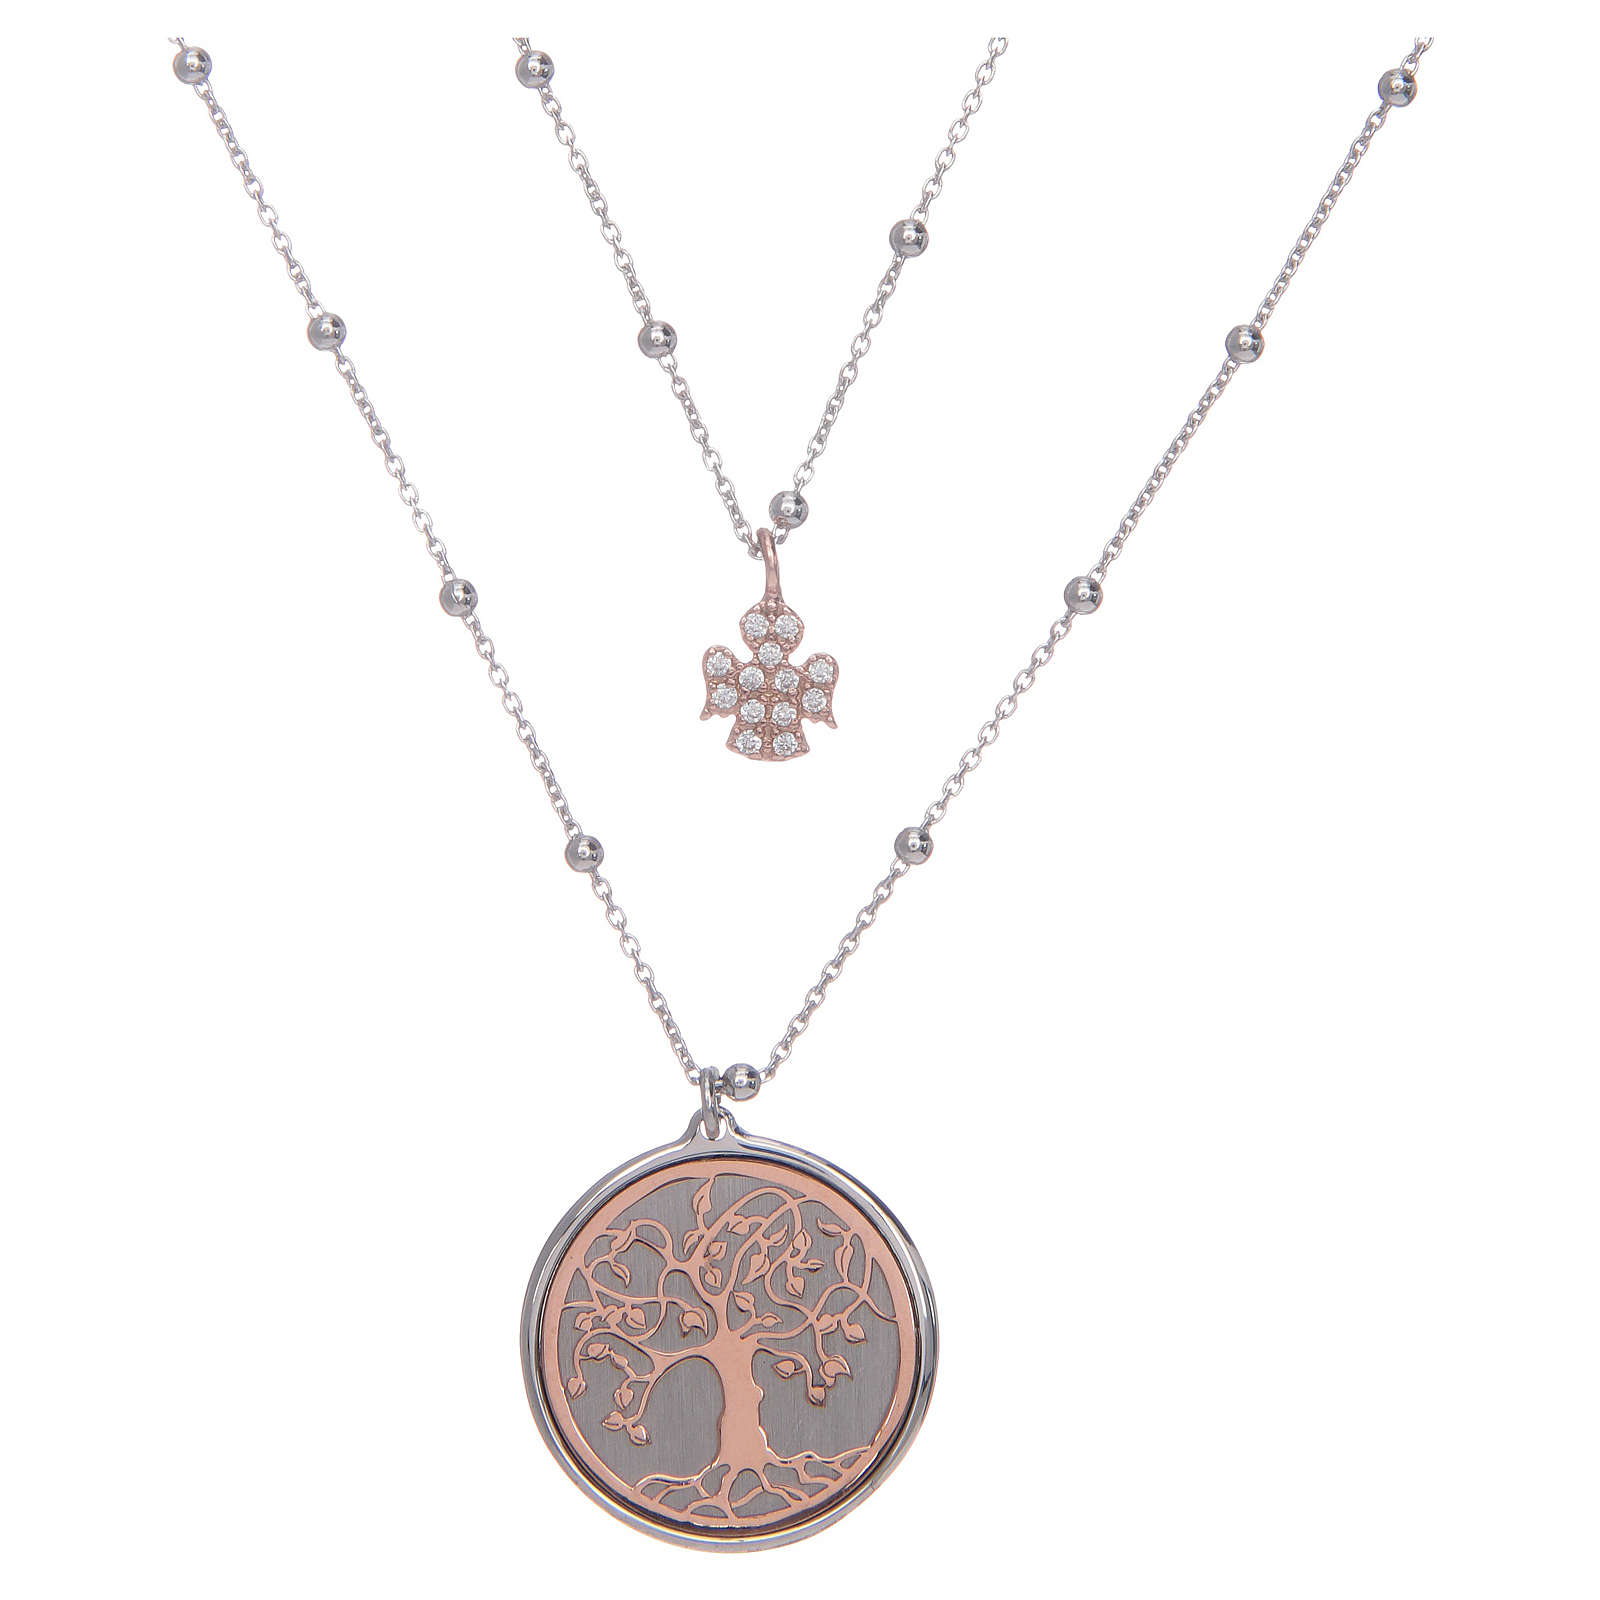 Amen long necklace with Tree of Life pendant in 925 sterling silver 4